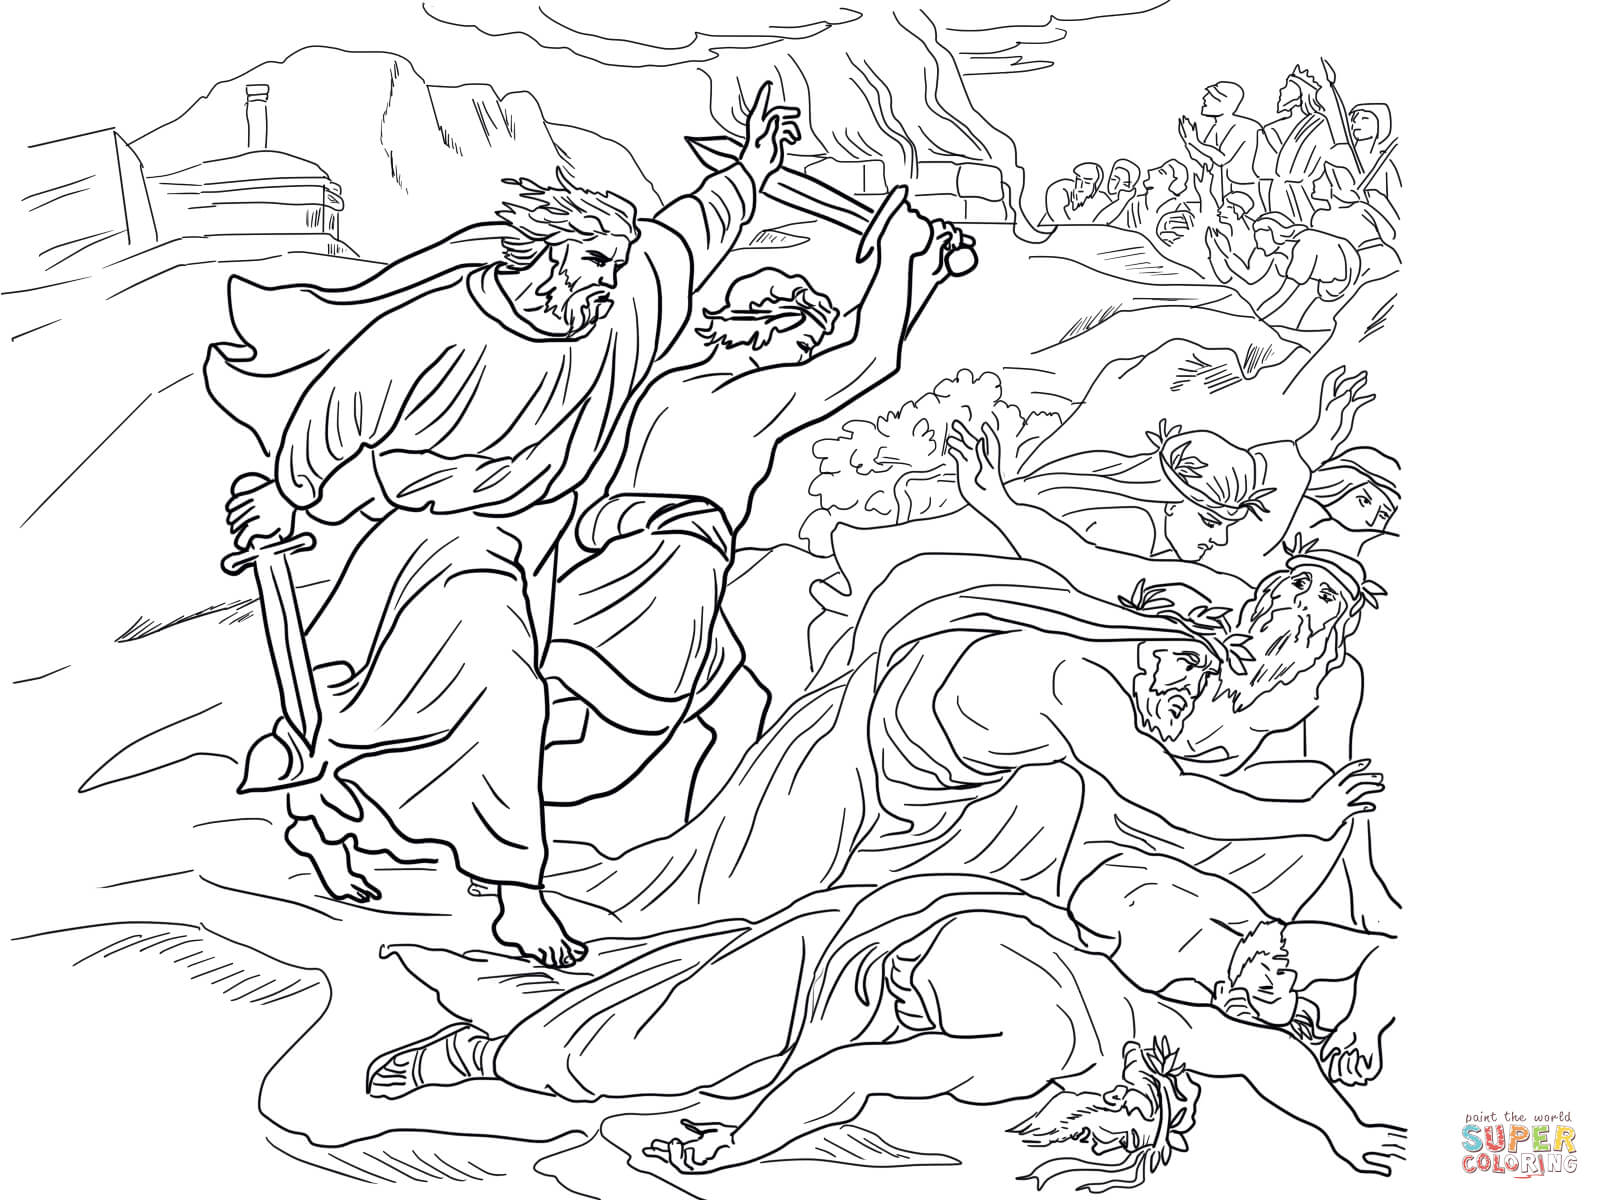 Coloring Pages Elisha Coloring Pages elisha coloring pages az prophet elijah god